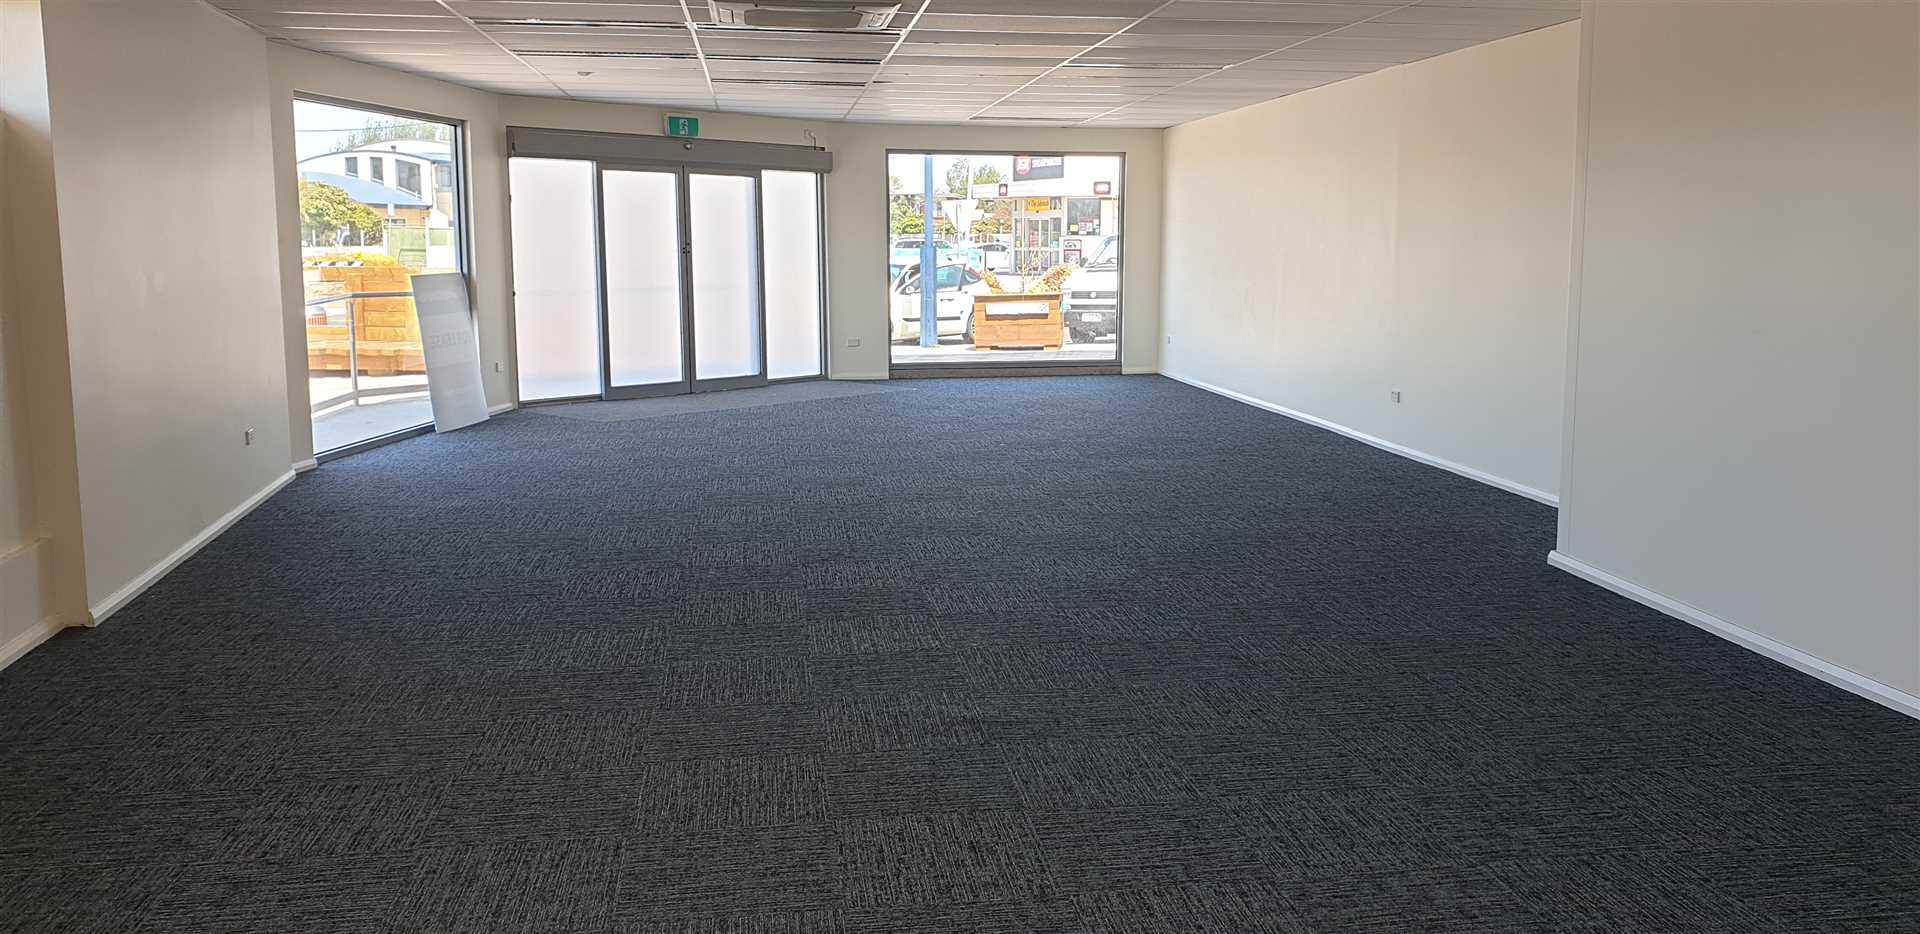 Prominent Space in Shearwater